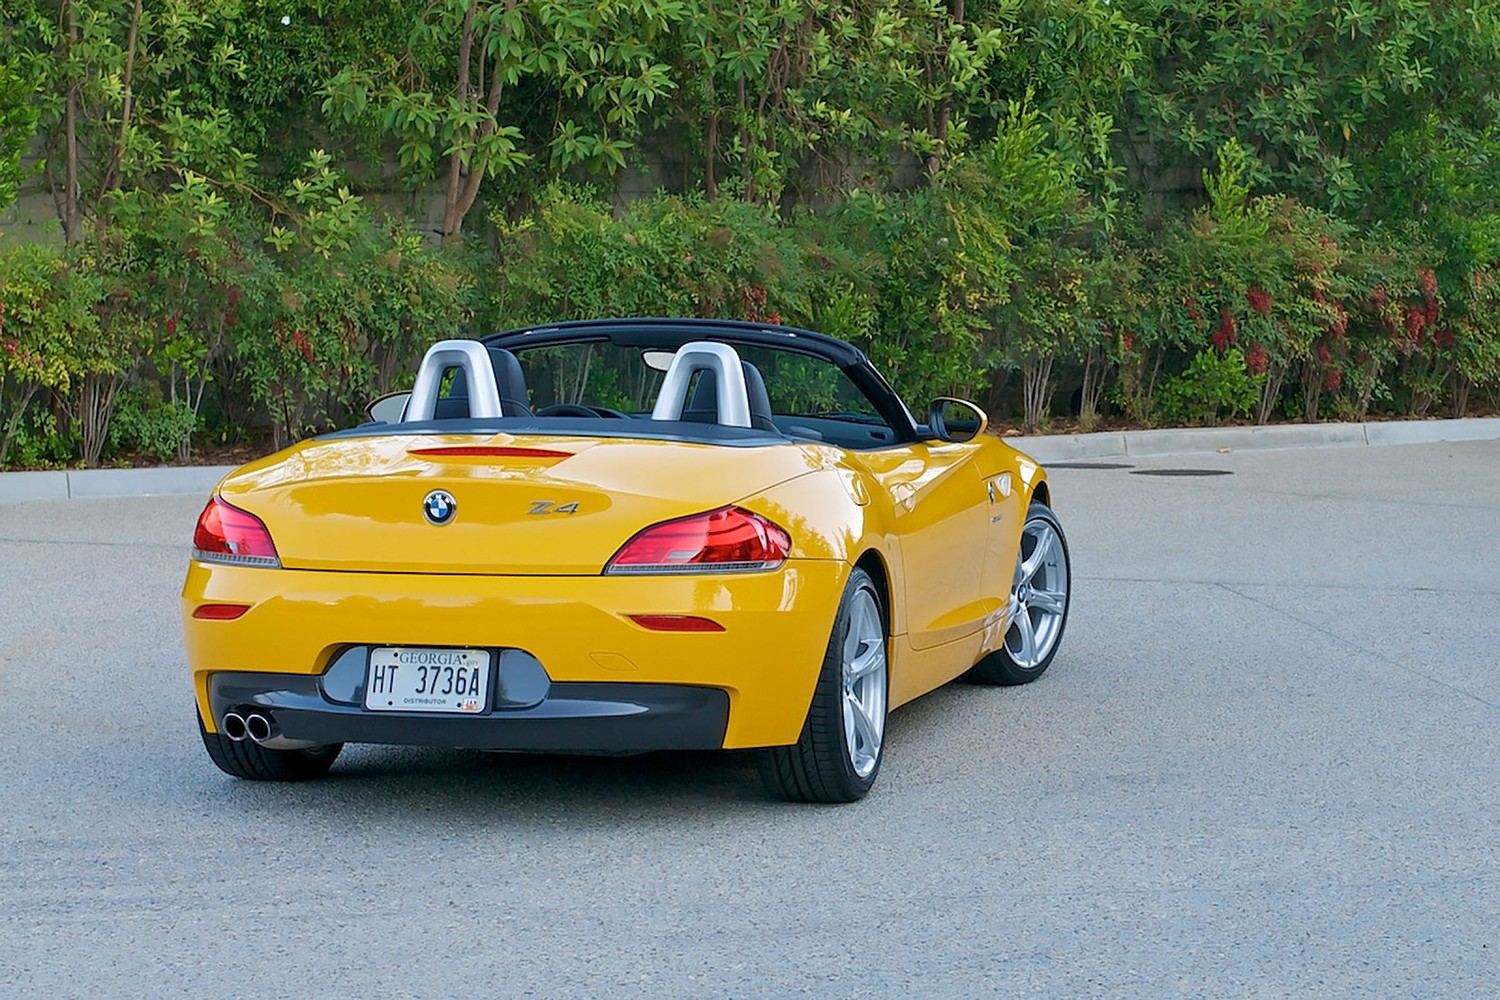 BMW Z4 sDrive28i Convertible Exterior (2012 model year shown)